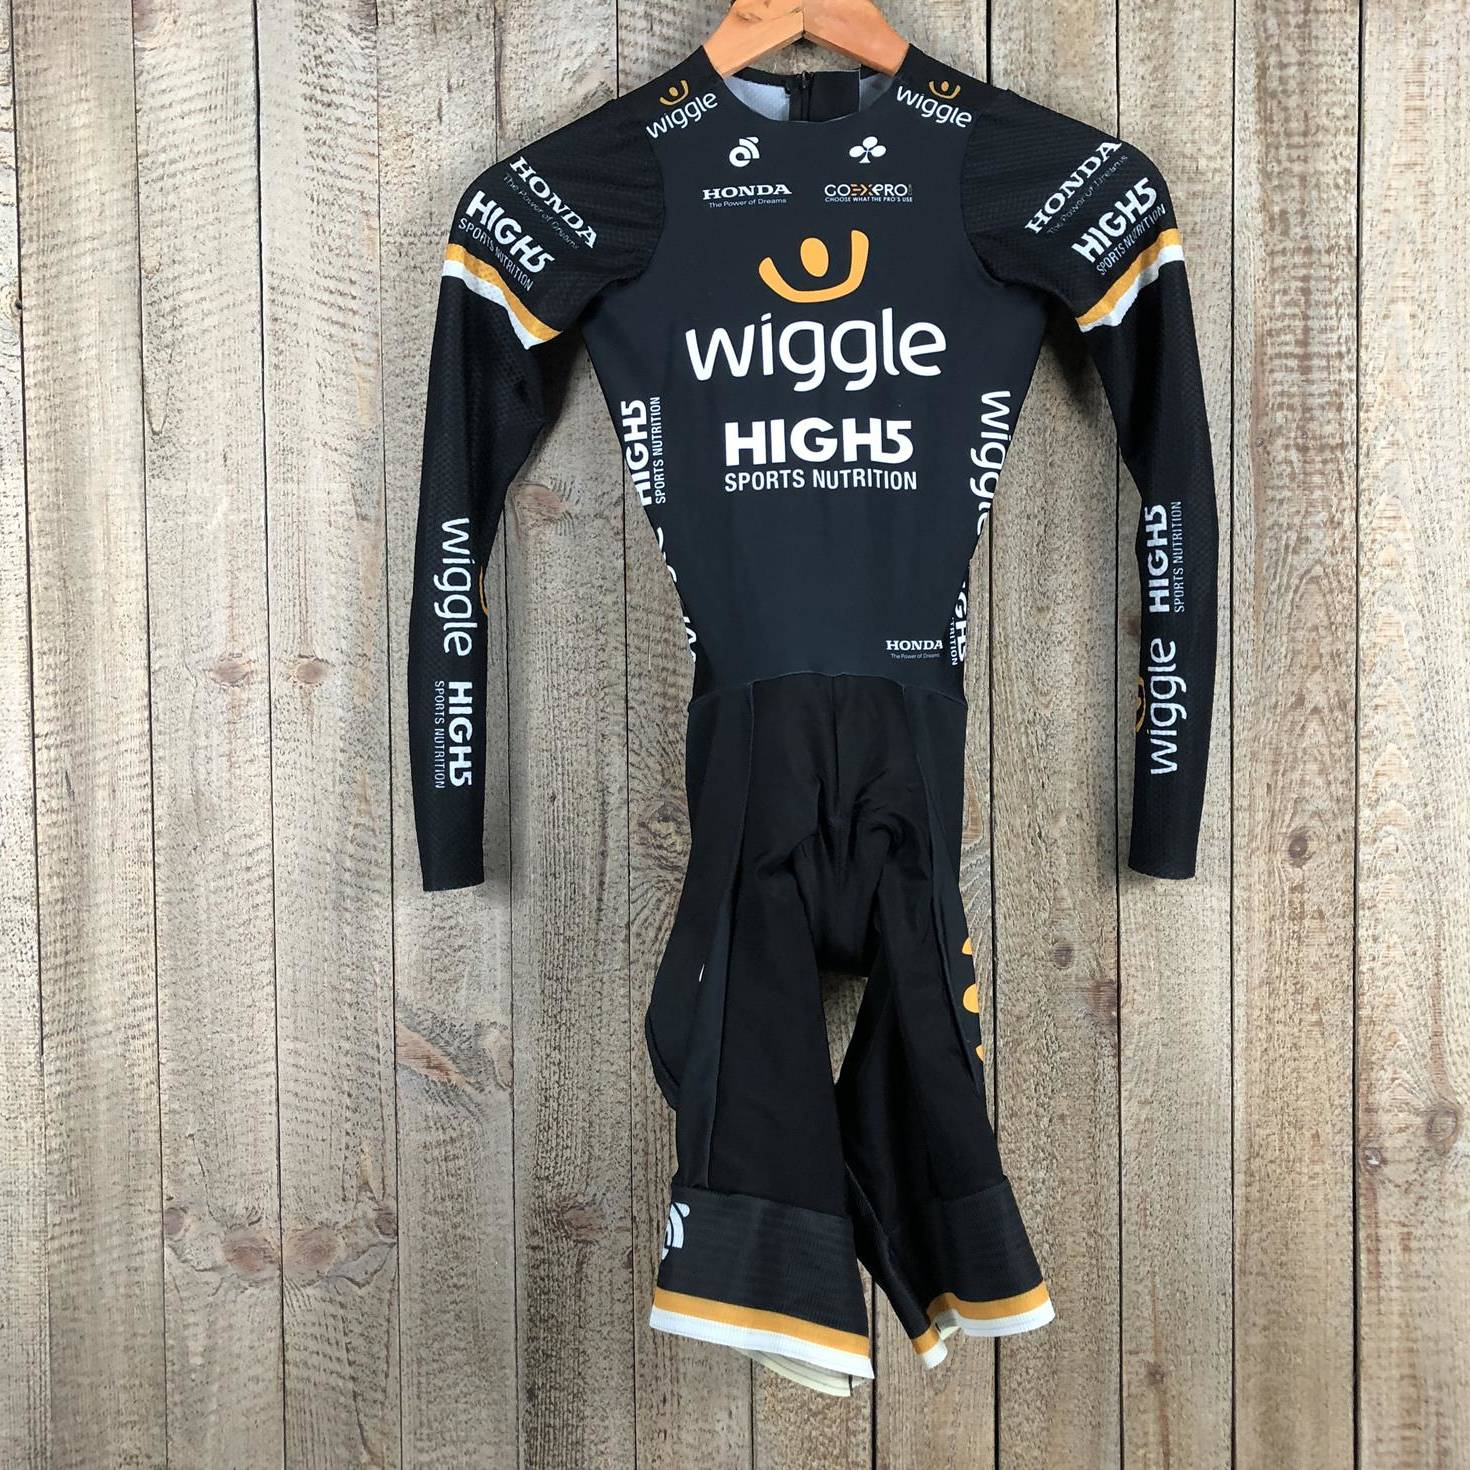 Speedsuit - Wiggle High5 00002699 (1)